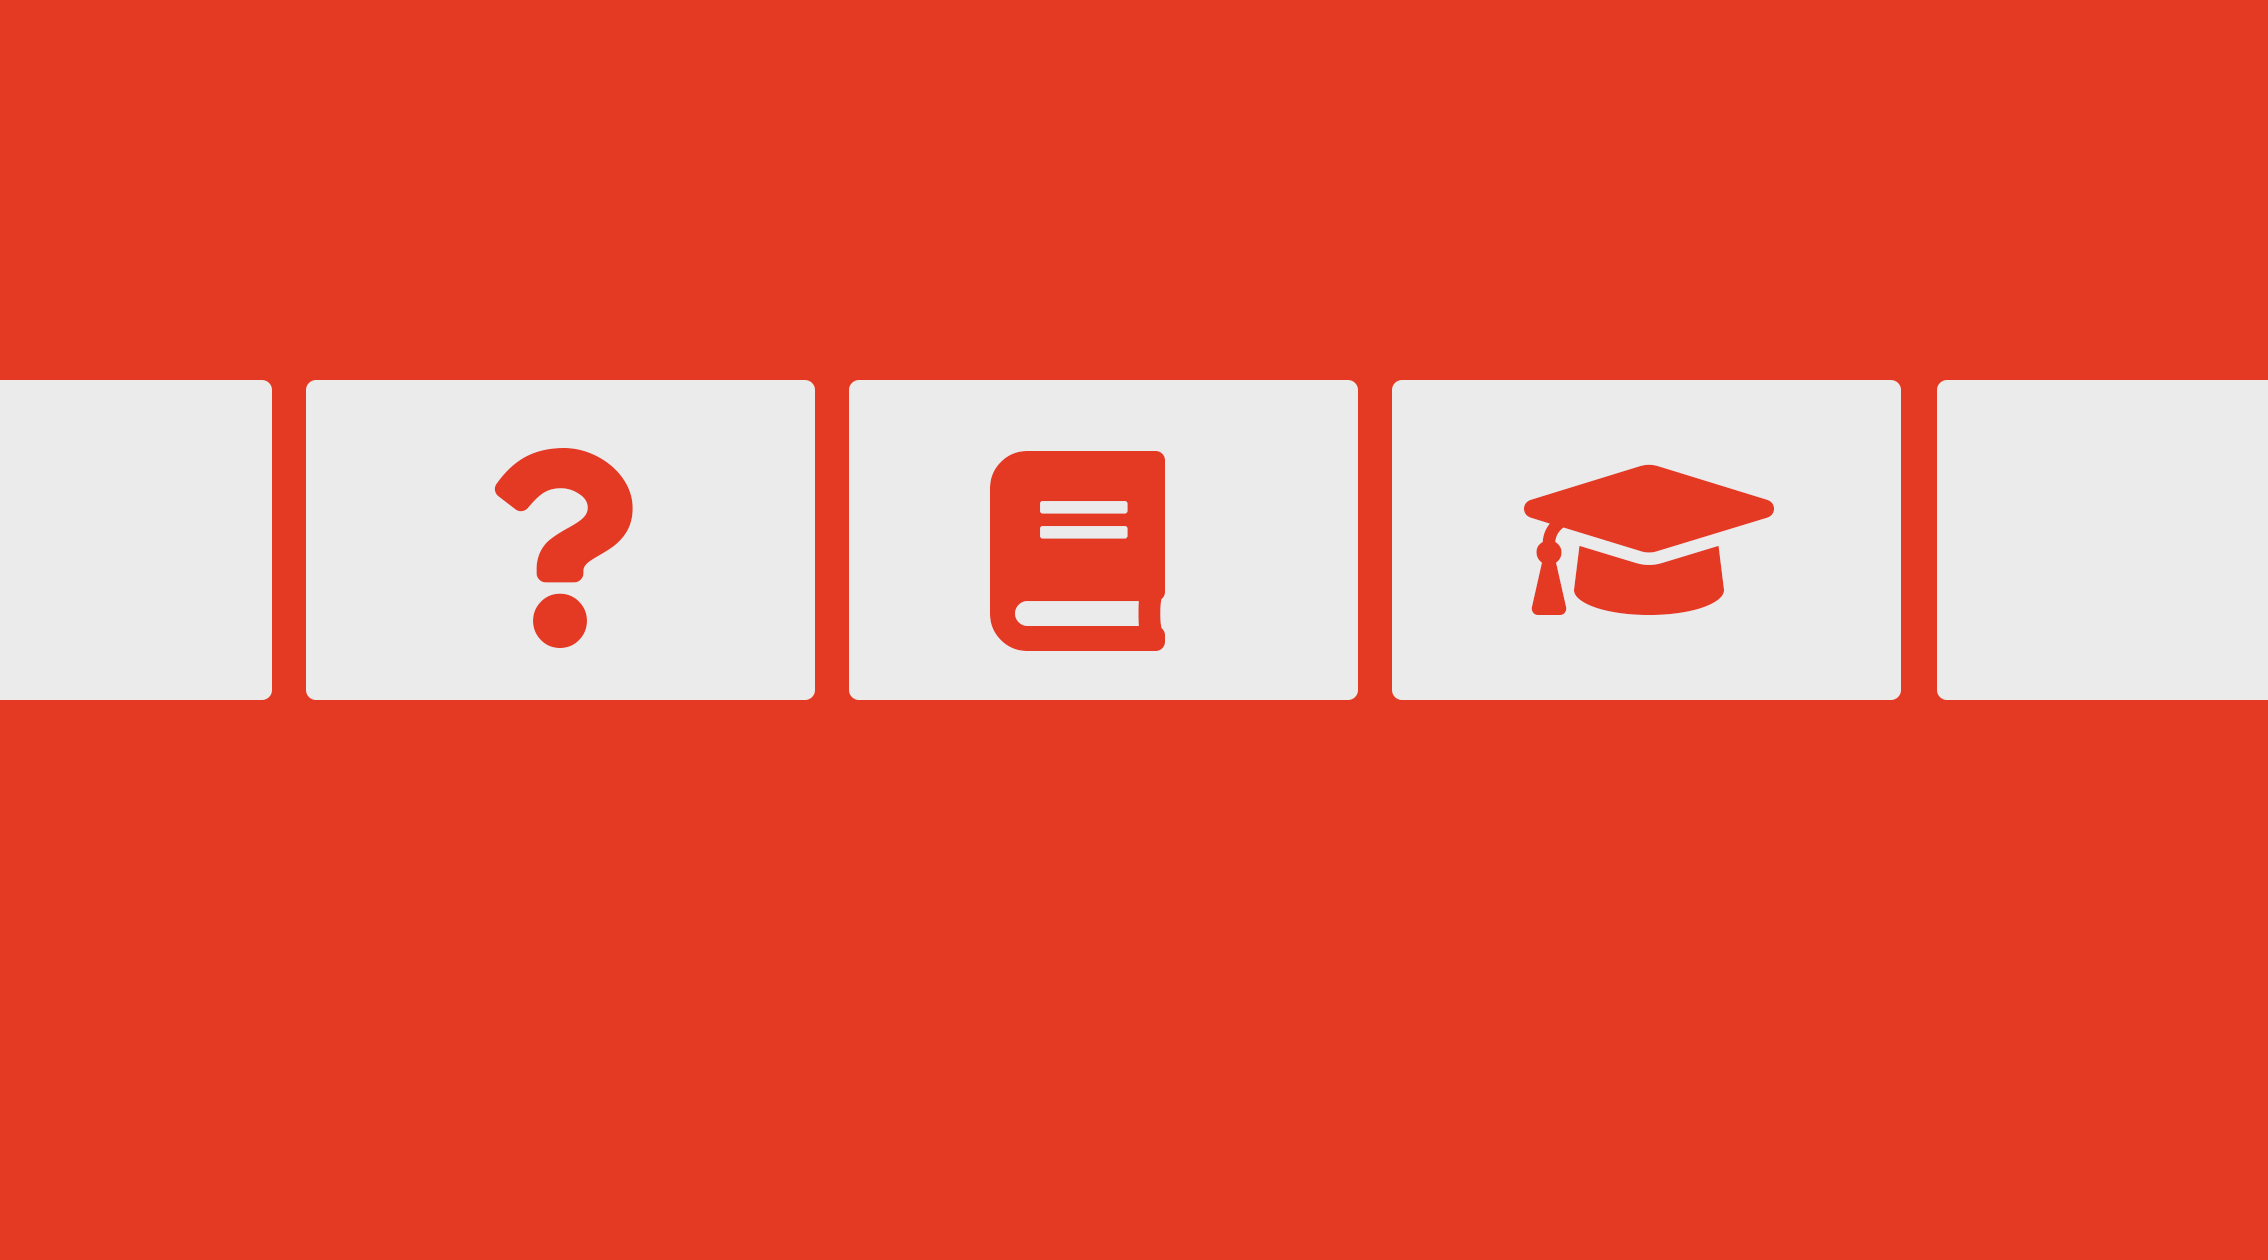 white squares on red background with a question mark, a book, and a graduation hat as symbols in them